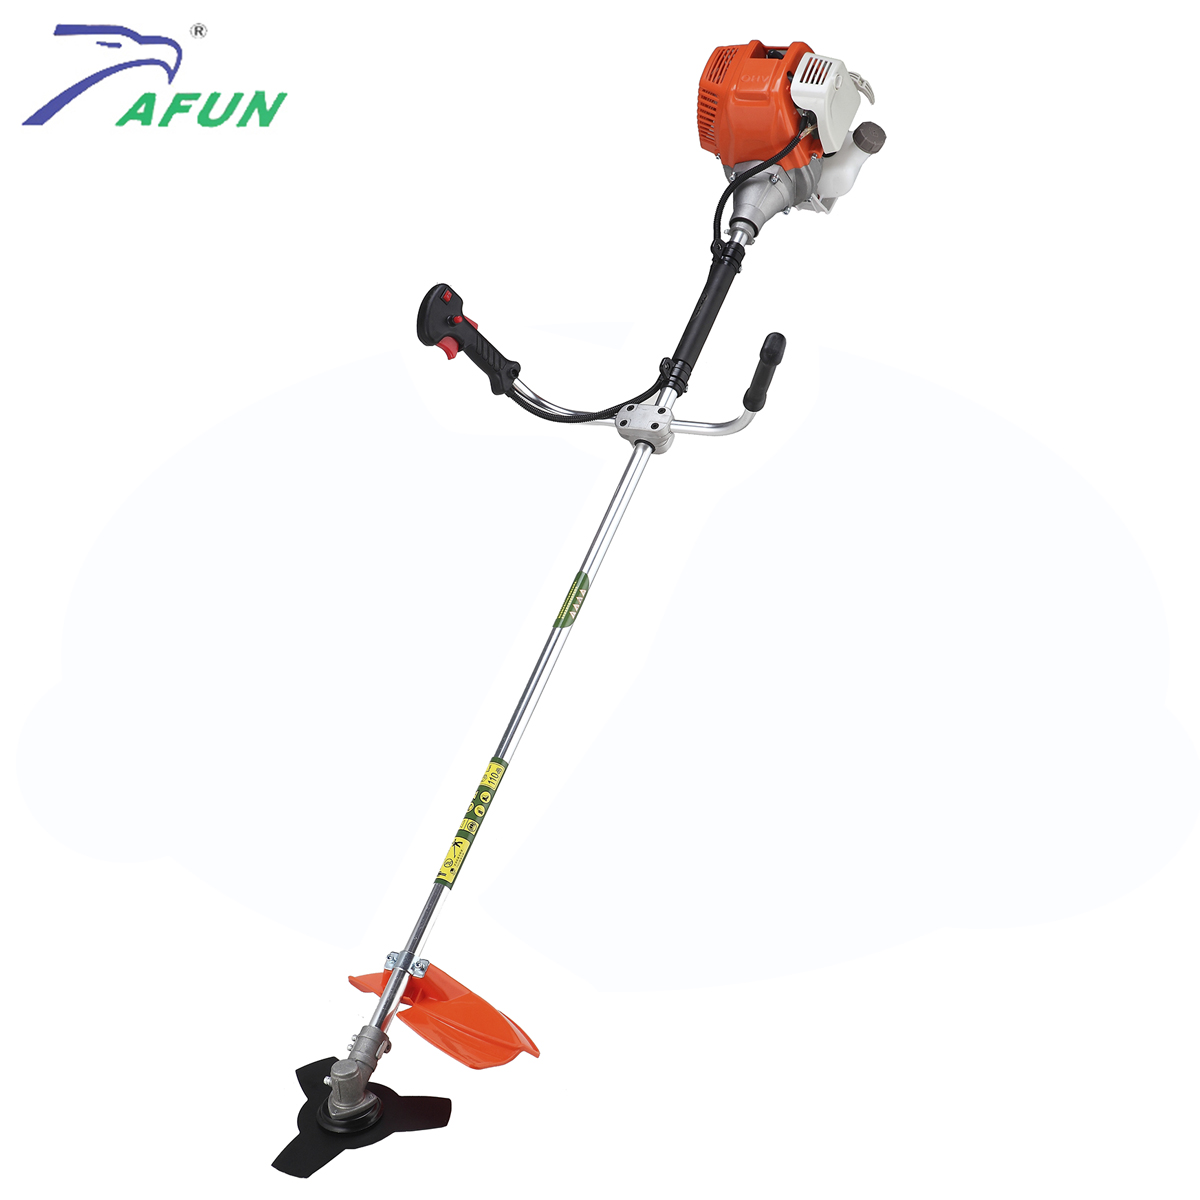 Aluminum working pole petreol powered new grass trimmer